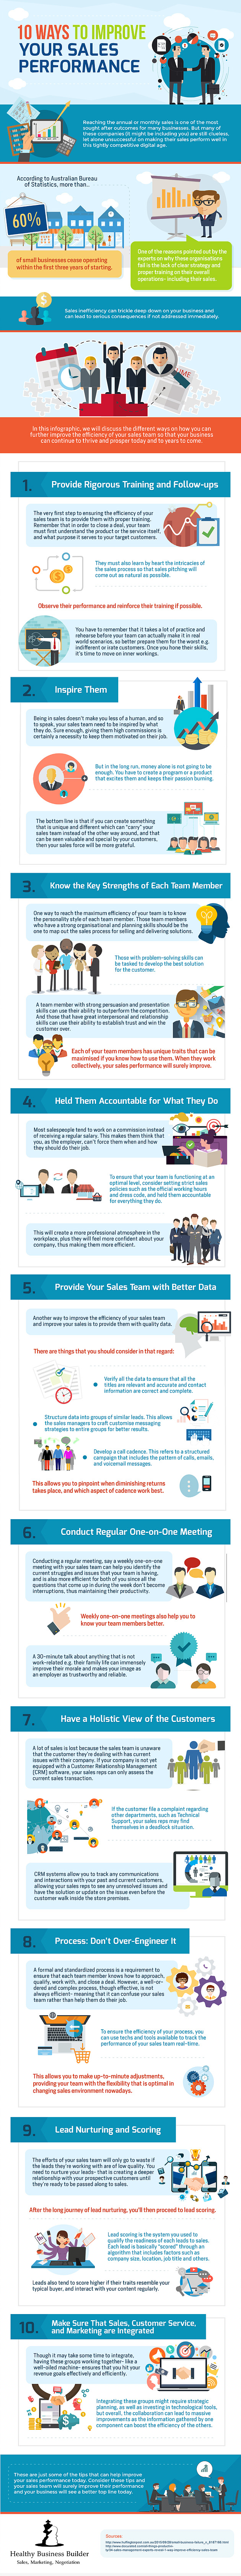 10 Ways to Improve Your Sales Performance [Infographic]